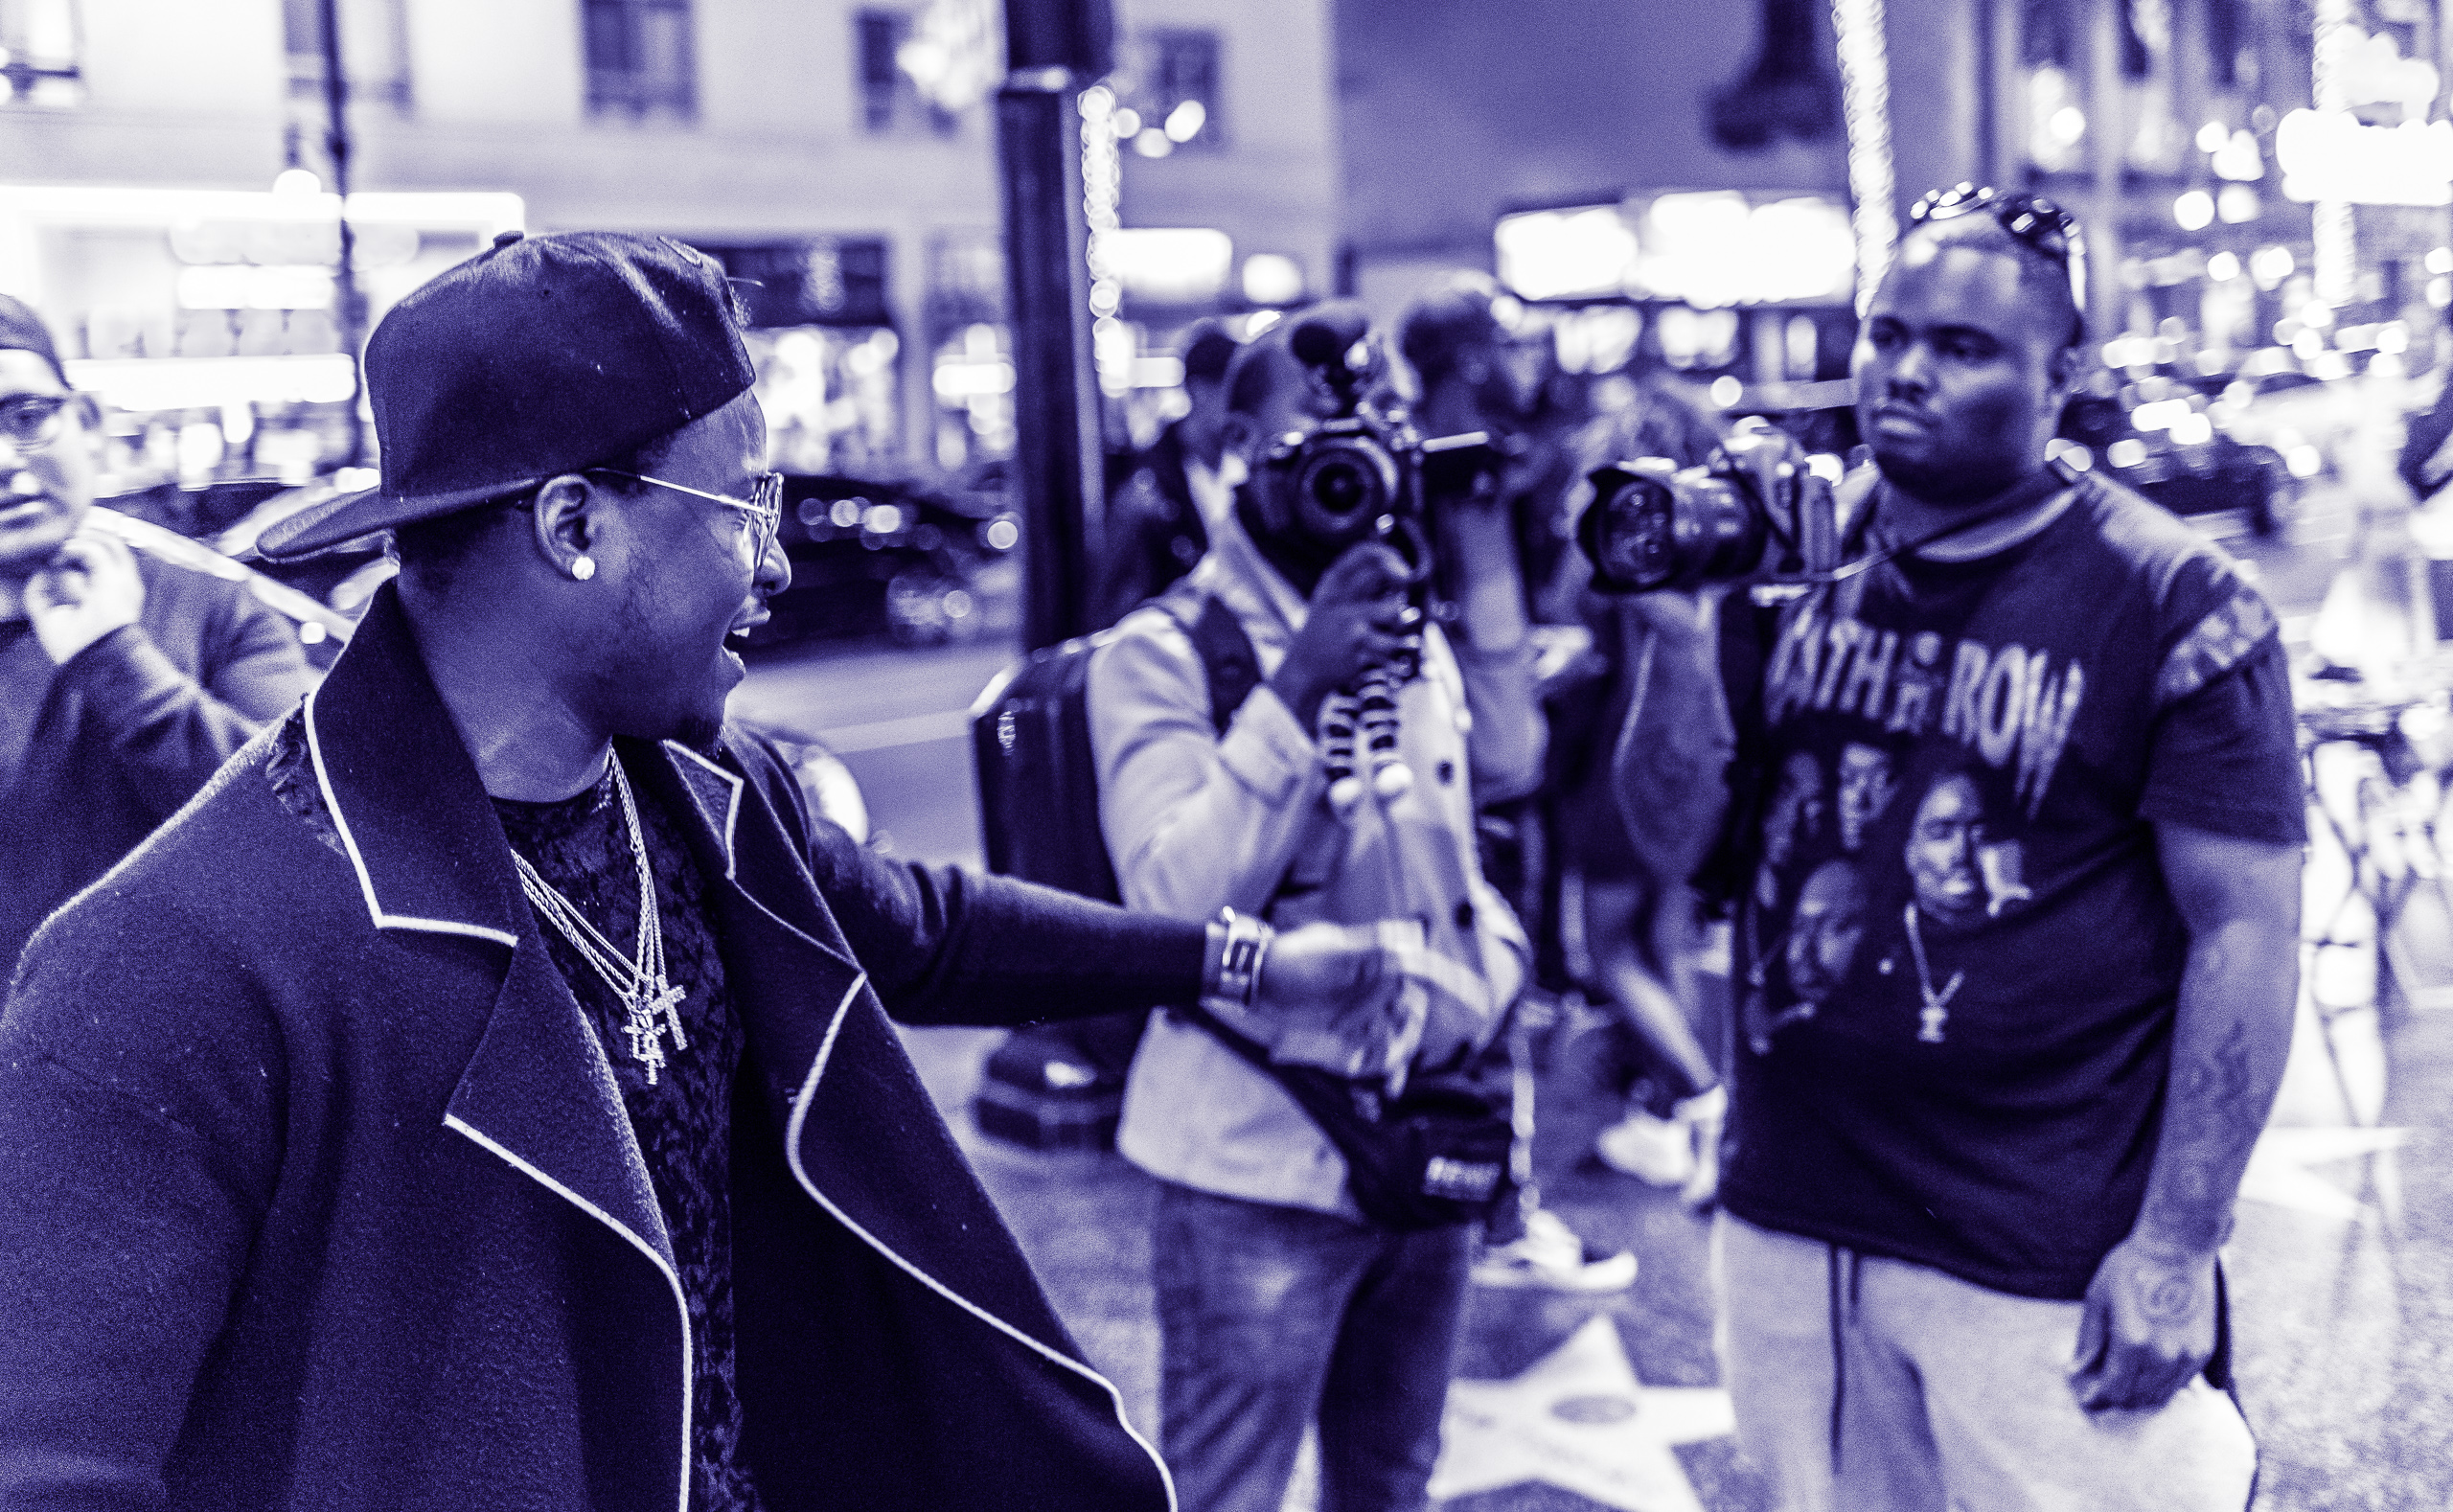 a man wearing gold chains oozes charisma toward two video cameras on Hollywood Blvd.